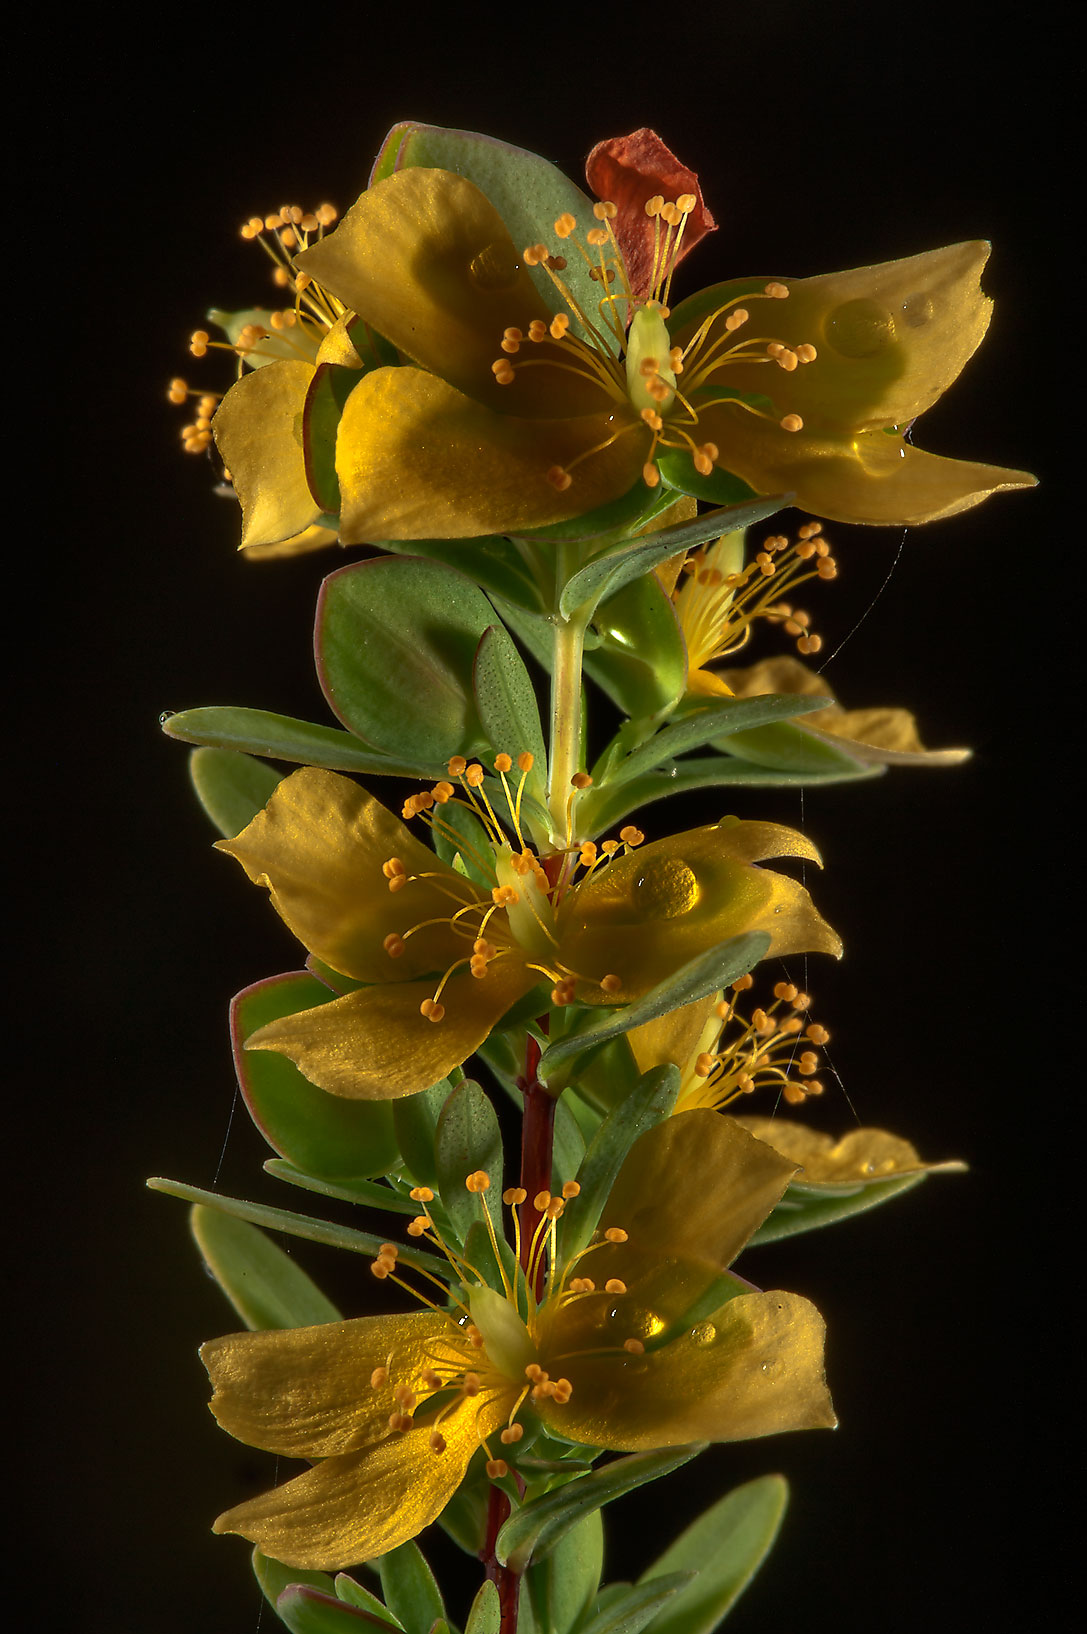 St. Andrew cross (Hypericum, Ascyrum hypericoides) in Lake Bryan Park. Bryan, Texas